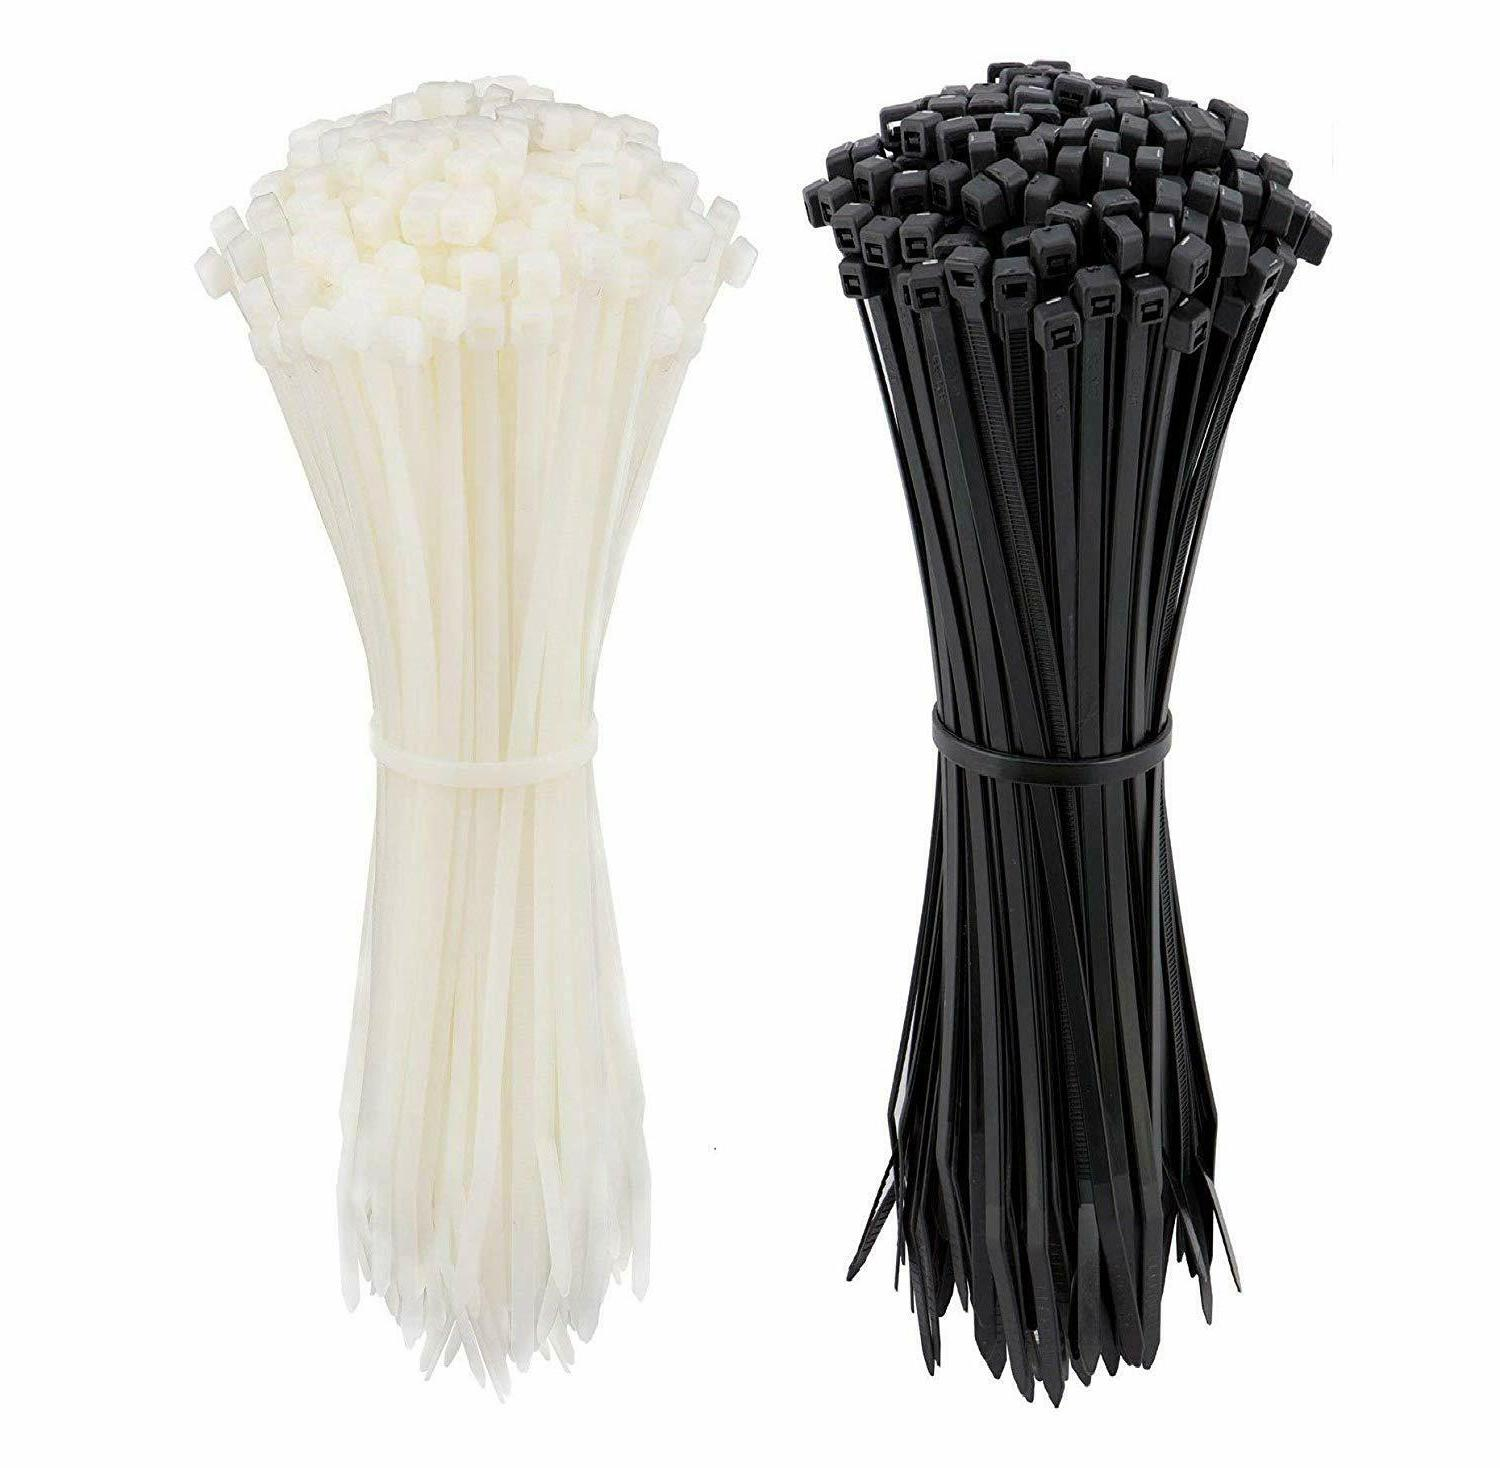 cable zip ties 8 inch ultra strong